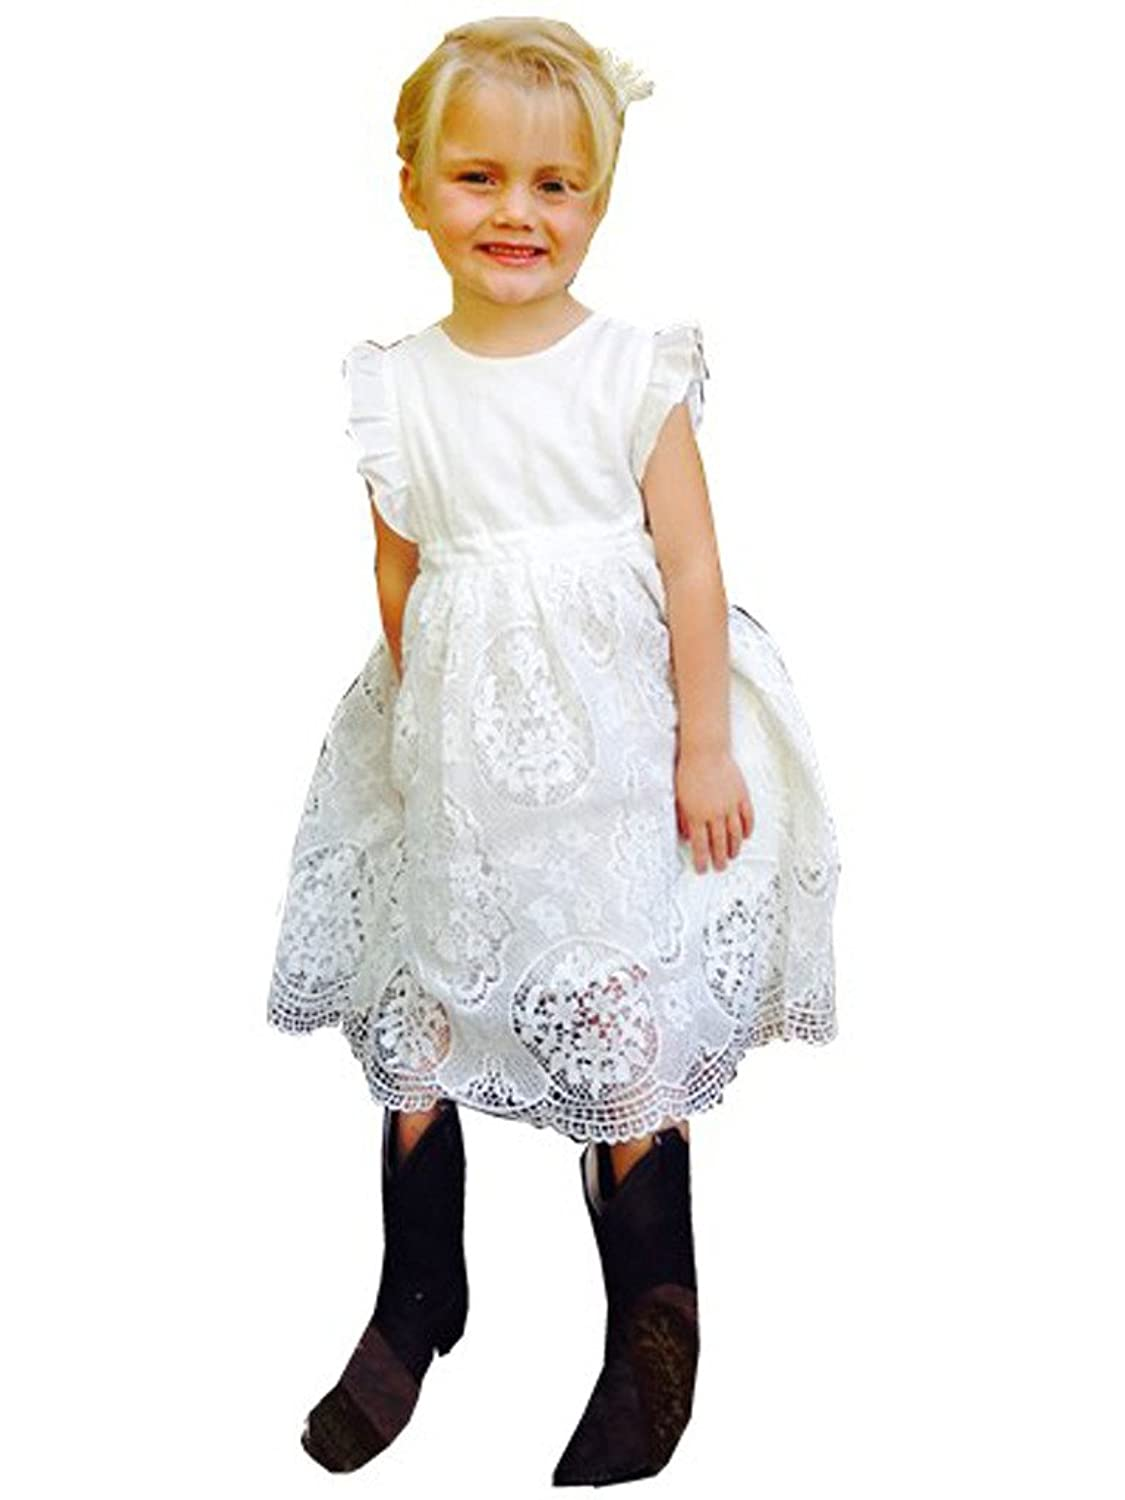 1930s Childrens Fashion: Girls, Boys, Toddler, Baby Costumes Bow Dream Flower Girls Dress Vintage Lace $25.99 AT vintagedancer.com